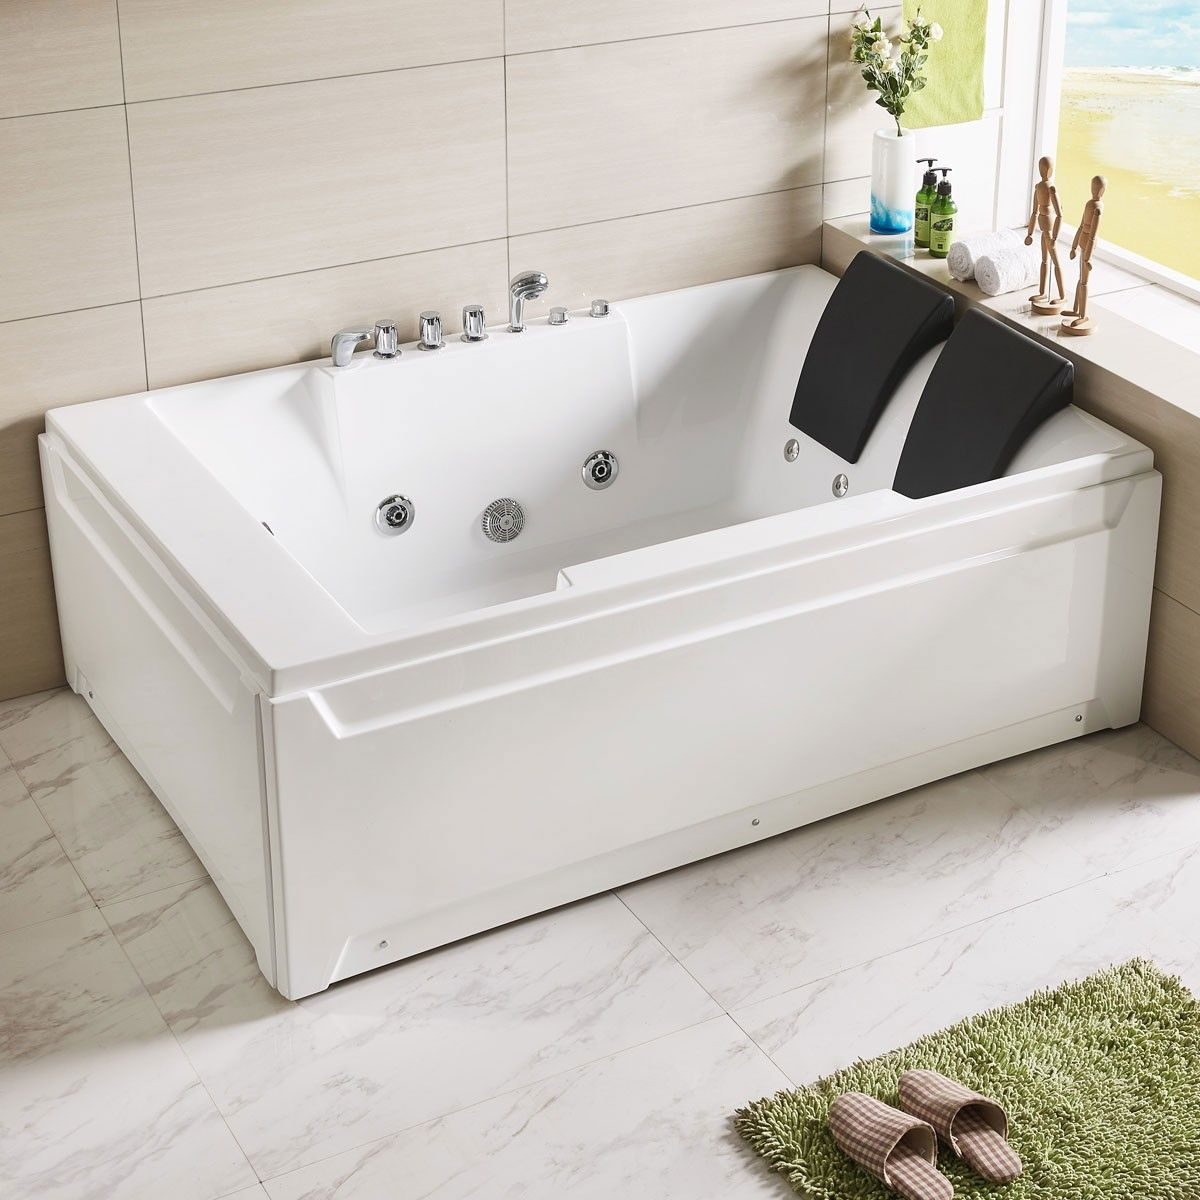 72 X 48 In Whirlpool Tub With Double Pillow Dk Q367 Baignoire